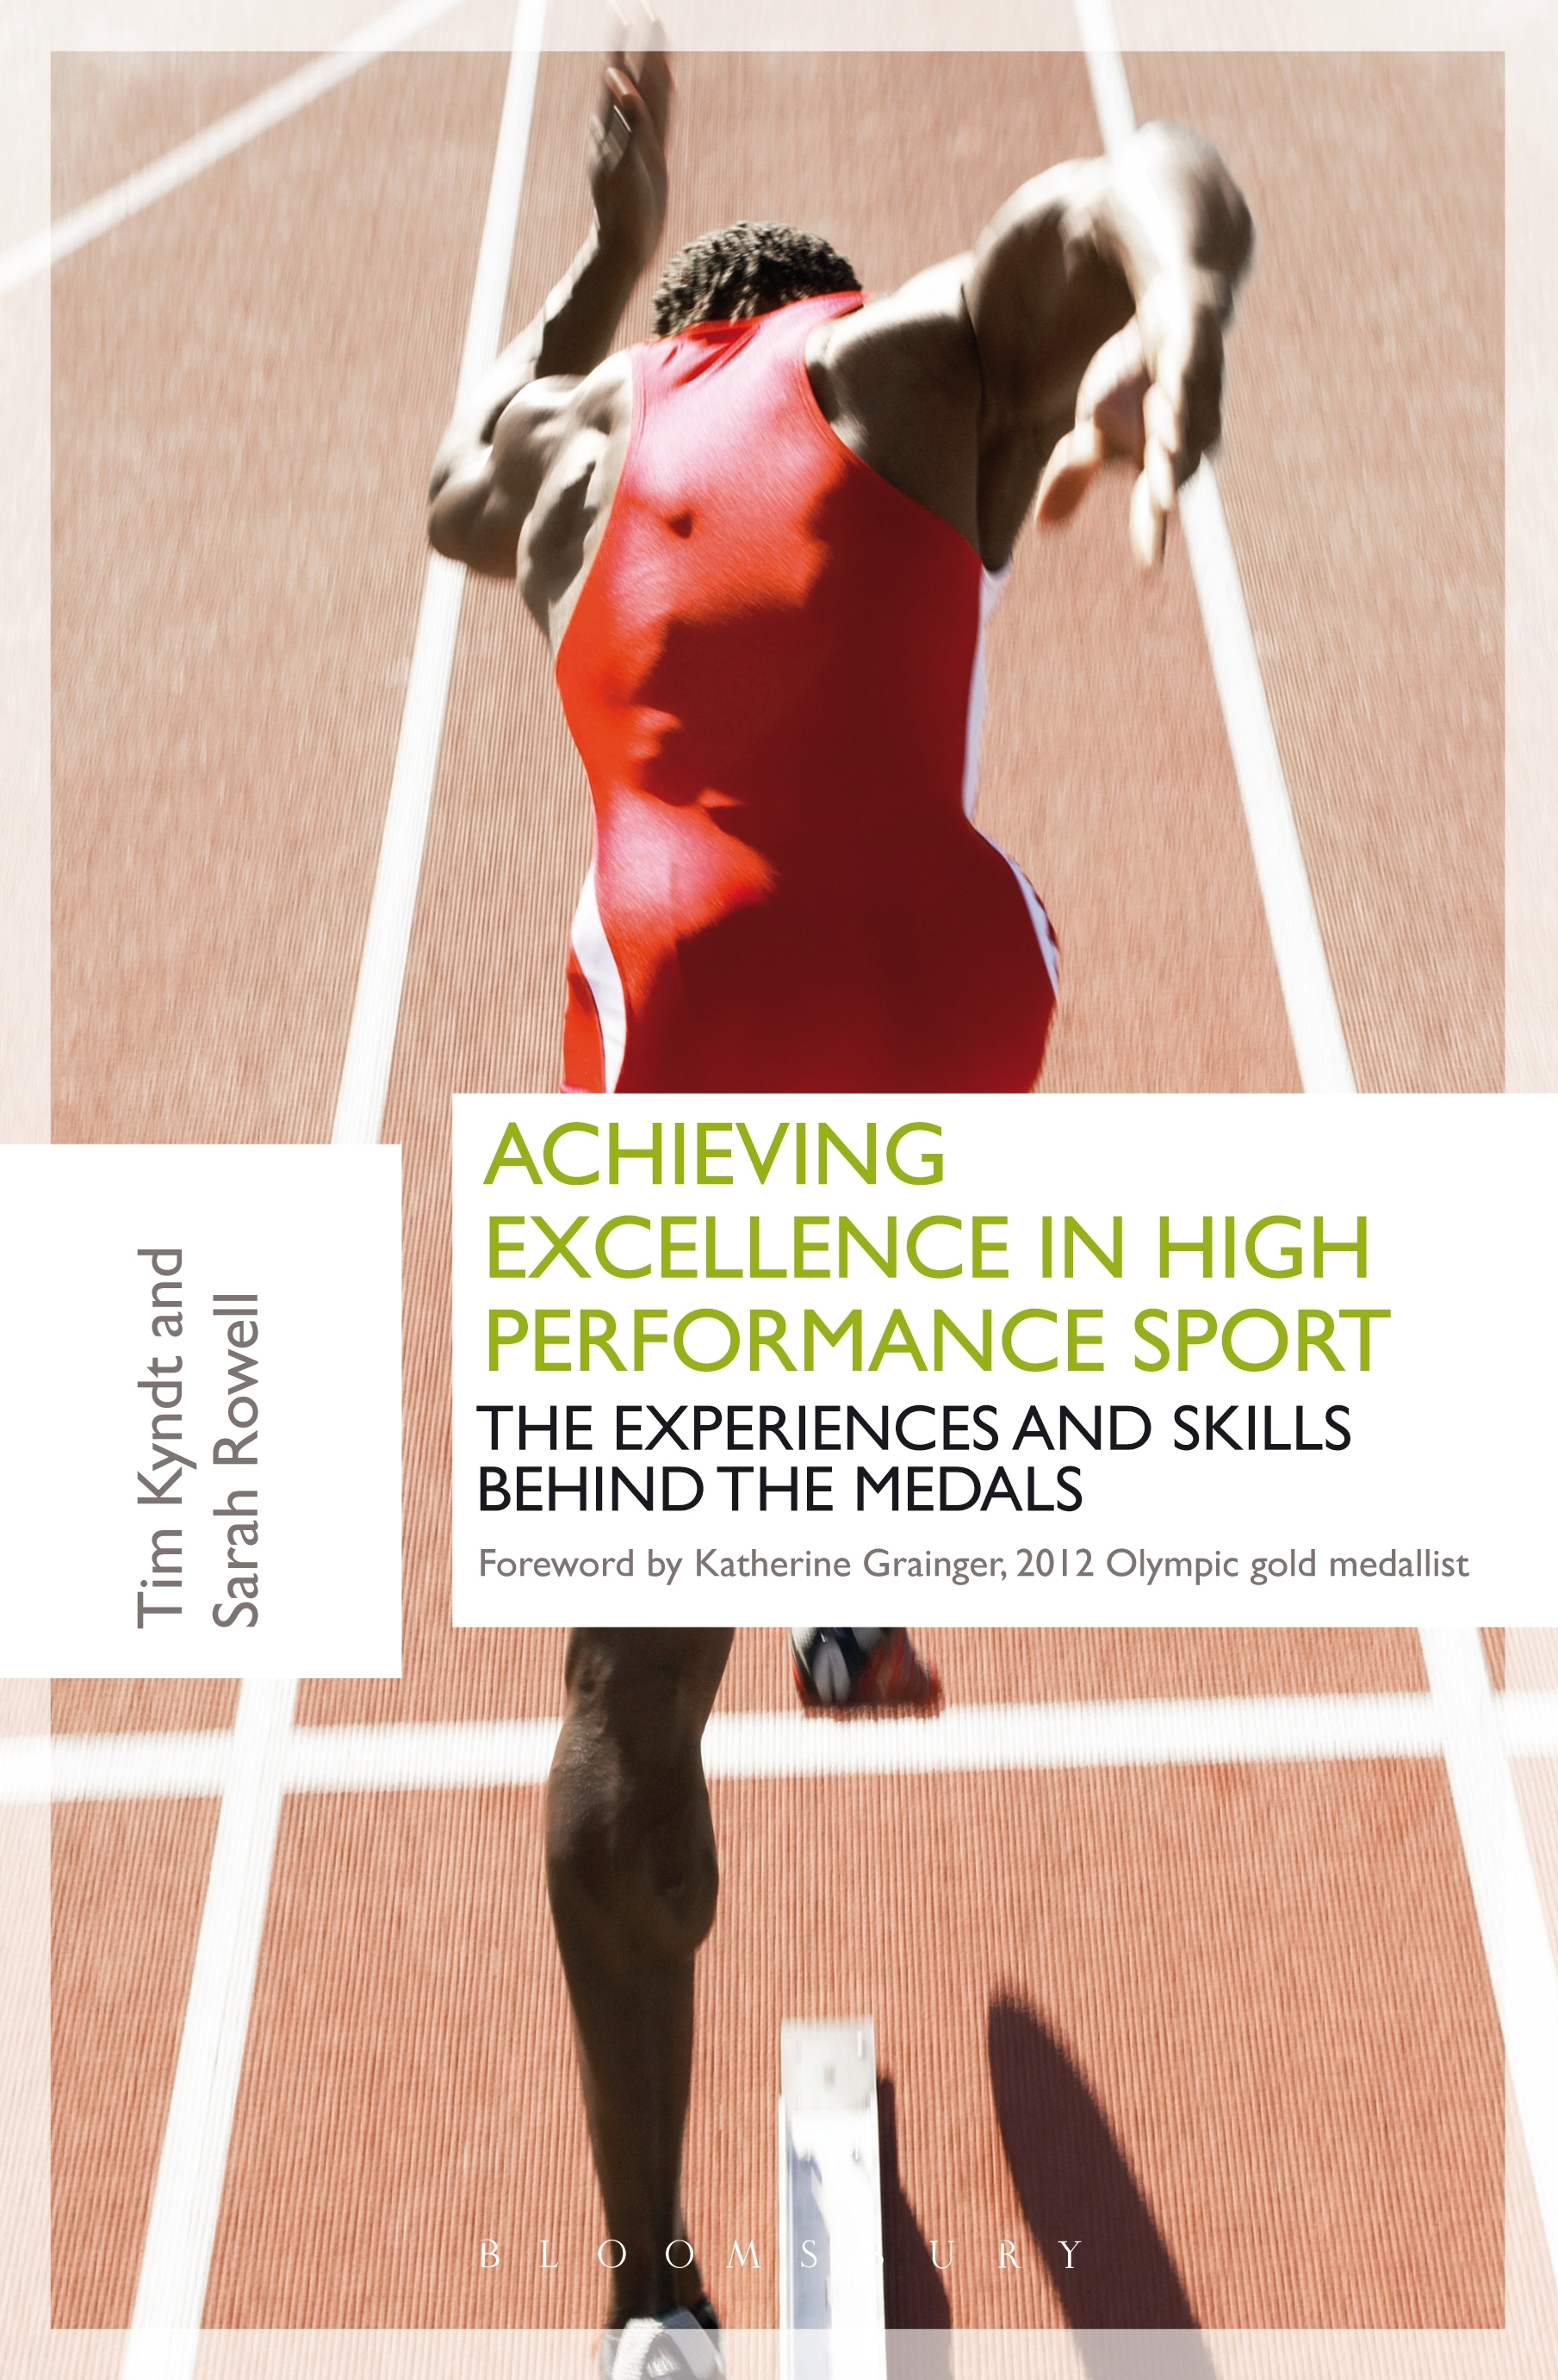 Achieving Excellence in High Performance Sport Experiences and Skills Behind the Medals